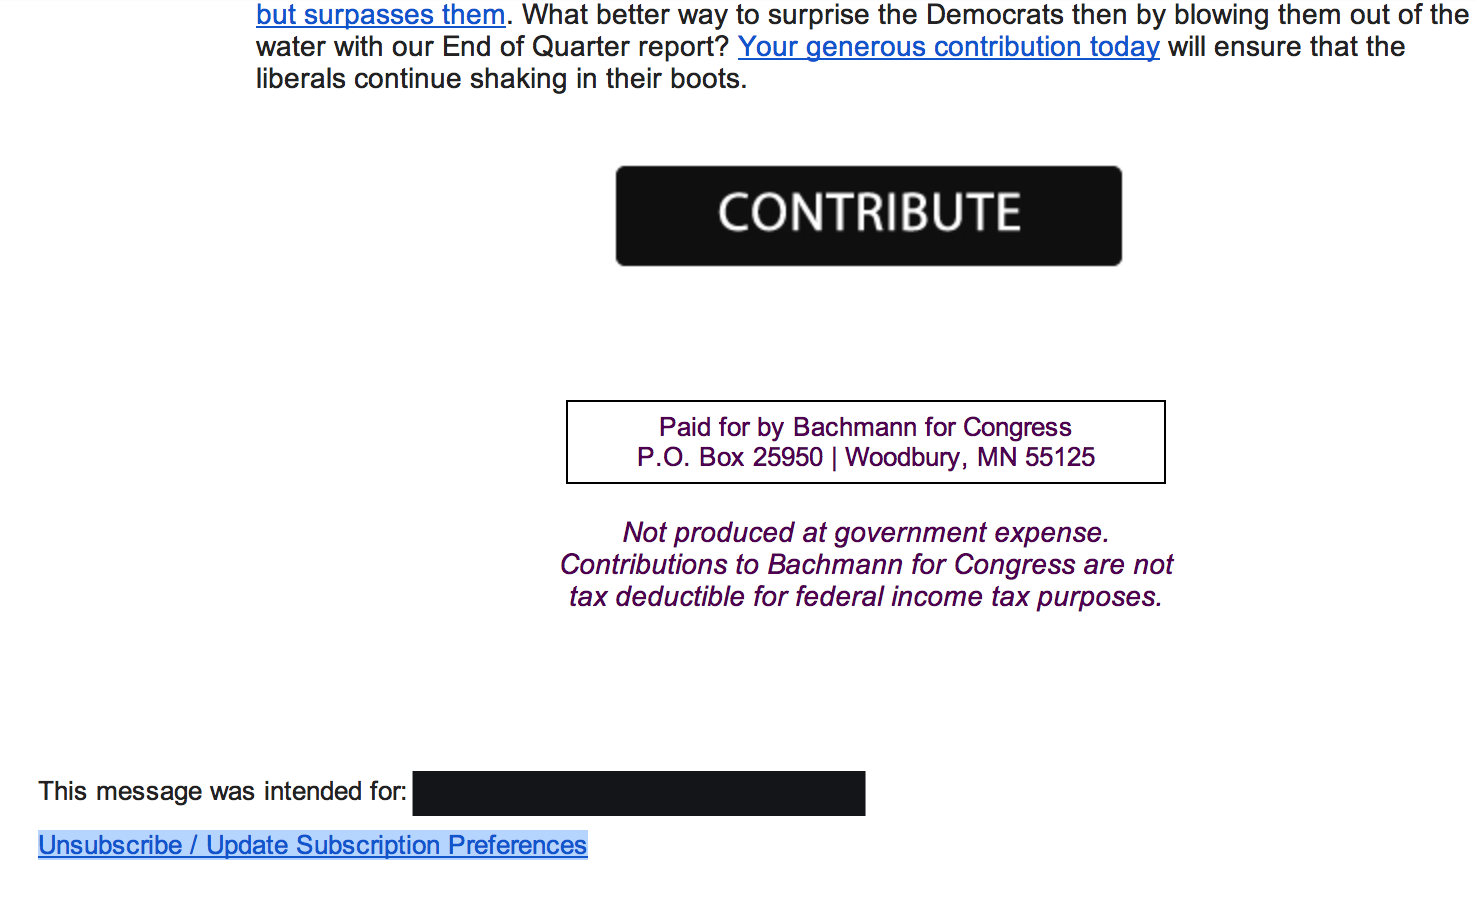 Email from Rep. Bachmann